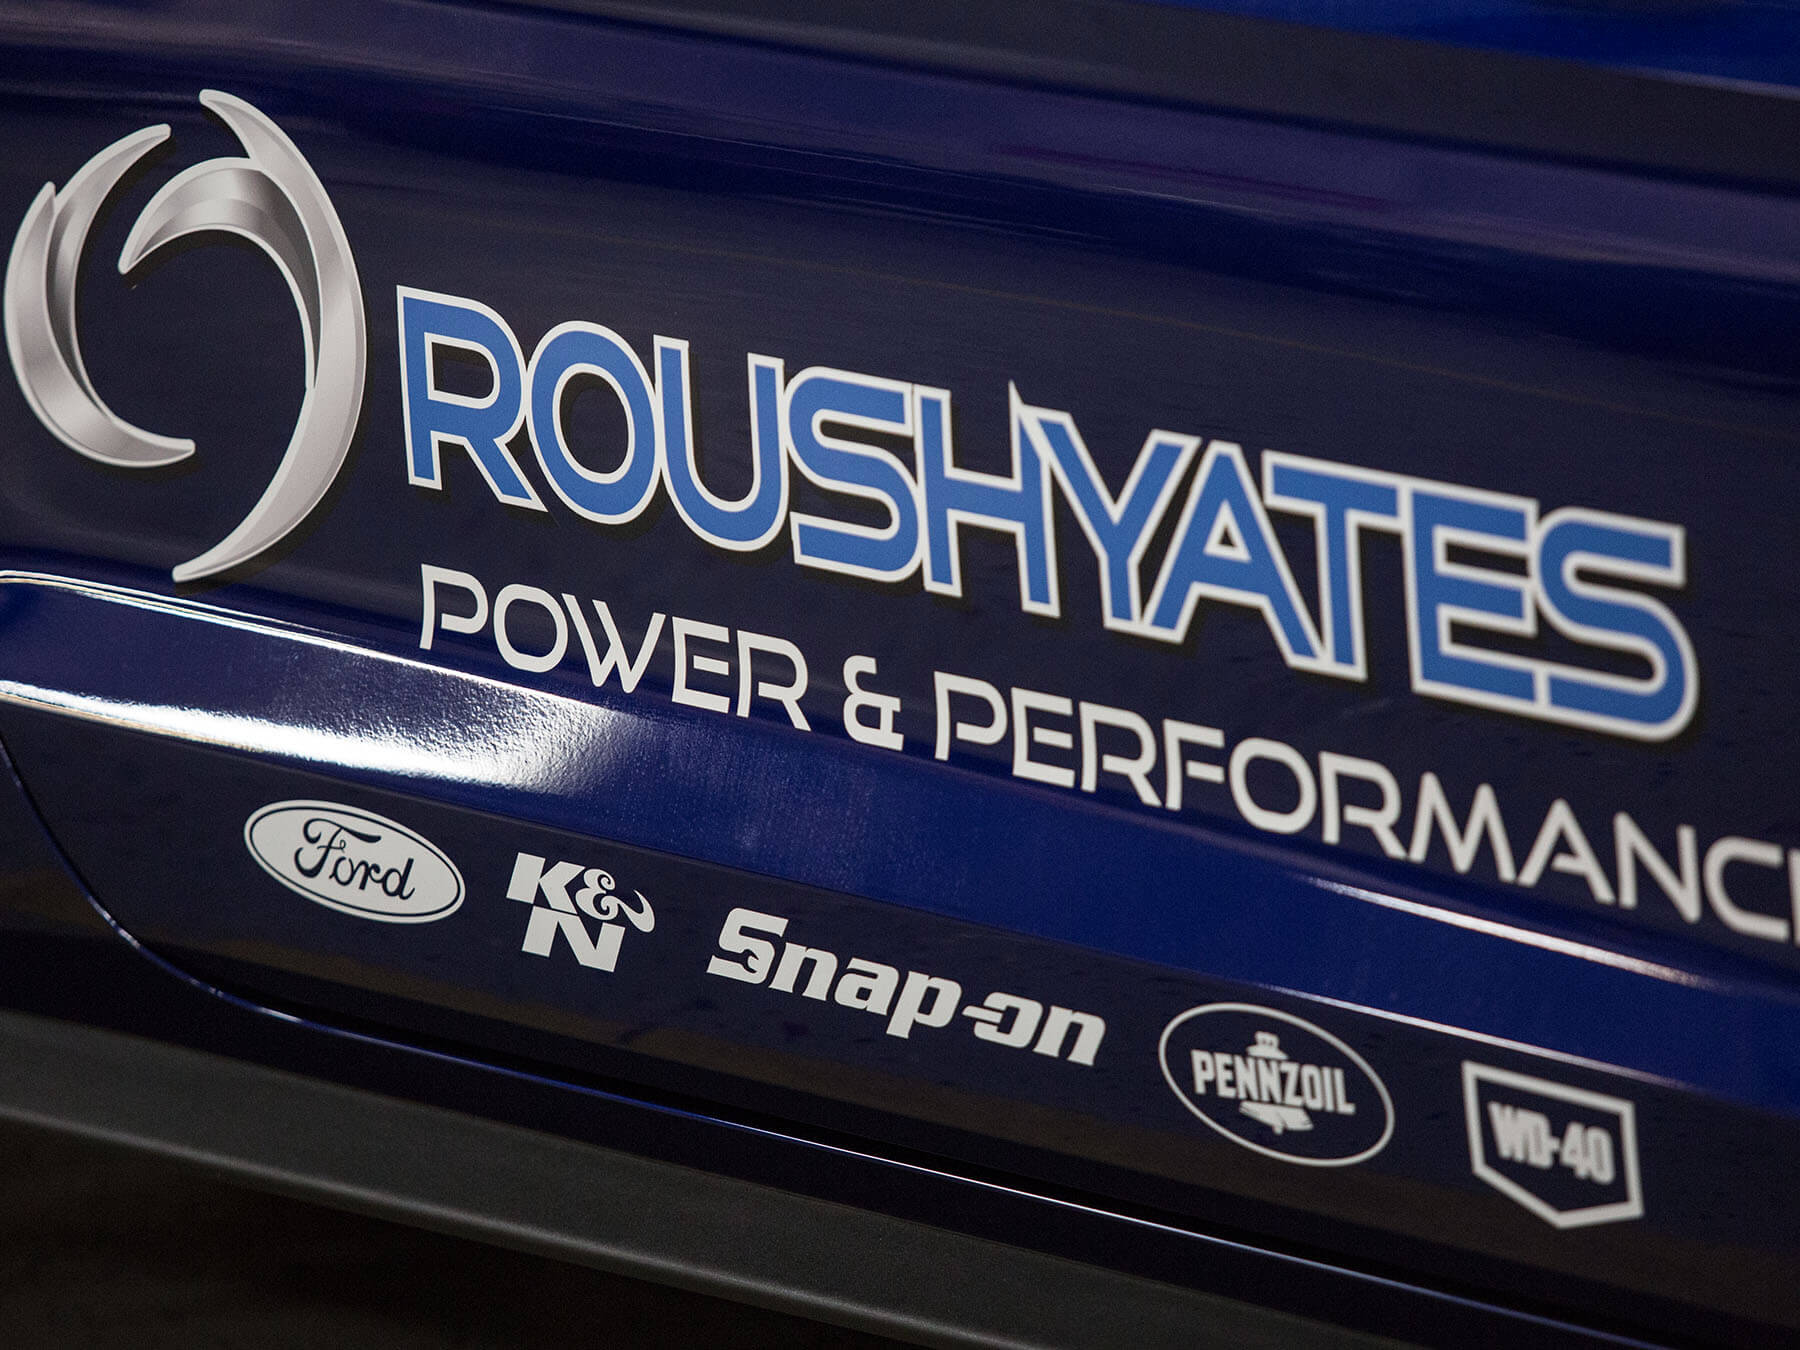 Close up on the blue roushyates logo